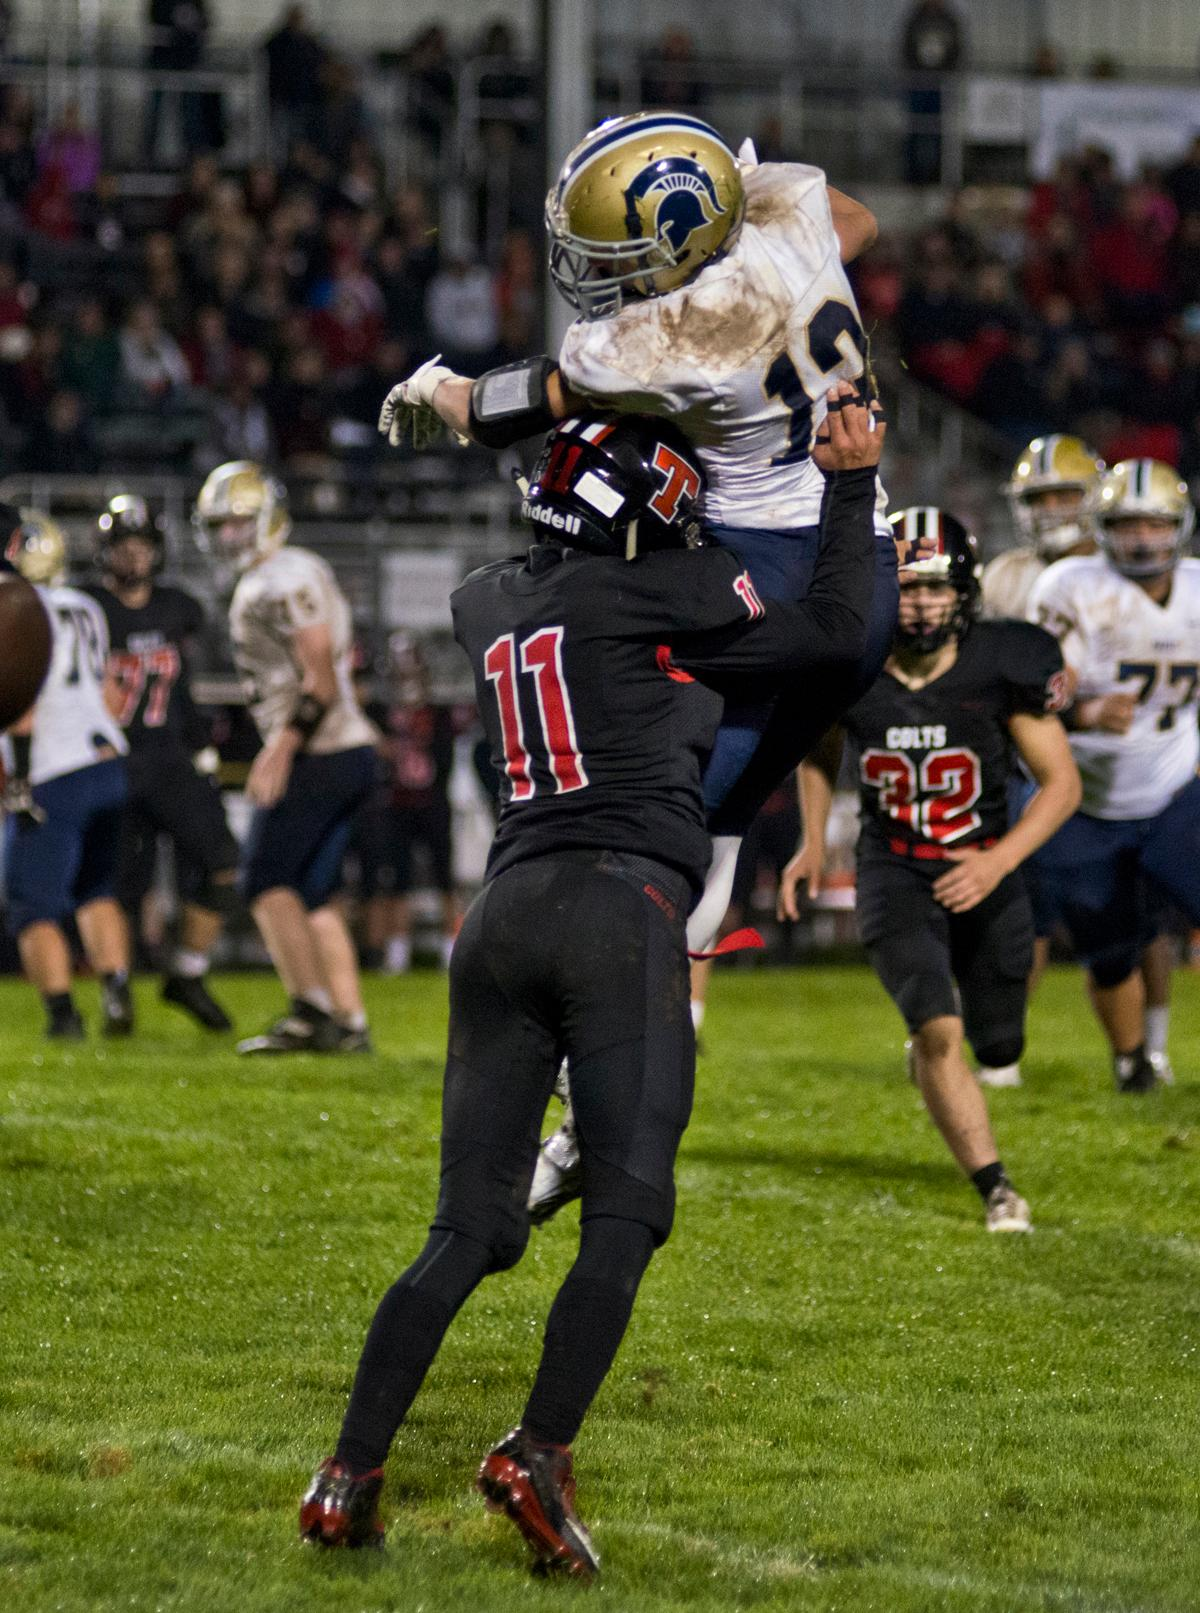 Thurston Colts defensive back Trevor Duran (#11) stops the forward motion of Marist Spartans wide receiver Hagan Stephenson (#13). Thurston defeated Marist 50 to 14 to seal the second position in their conference. Photo by Dan Morrison, Oregon News Lab